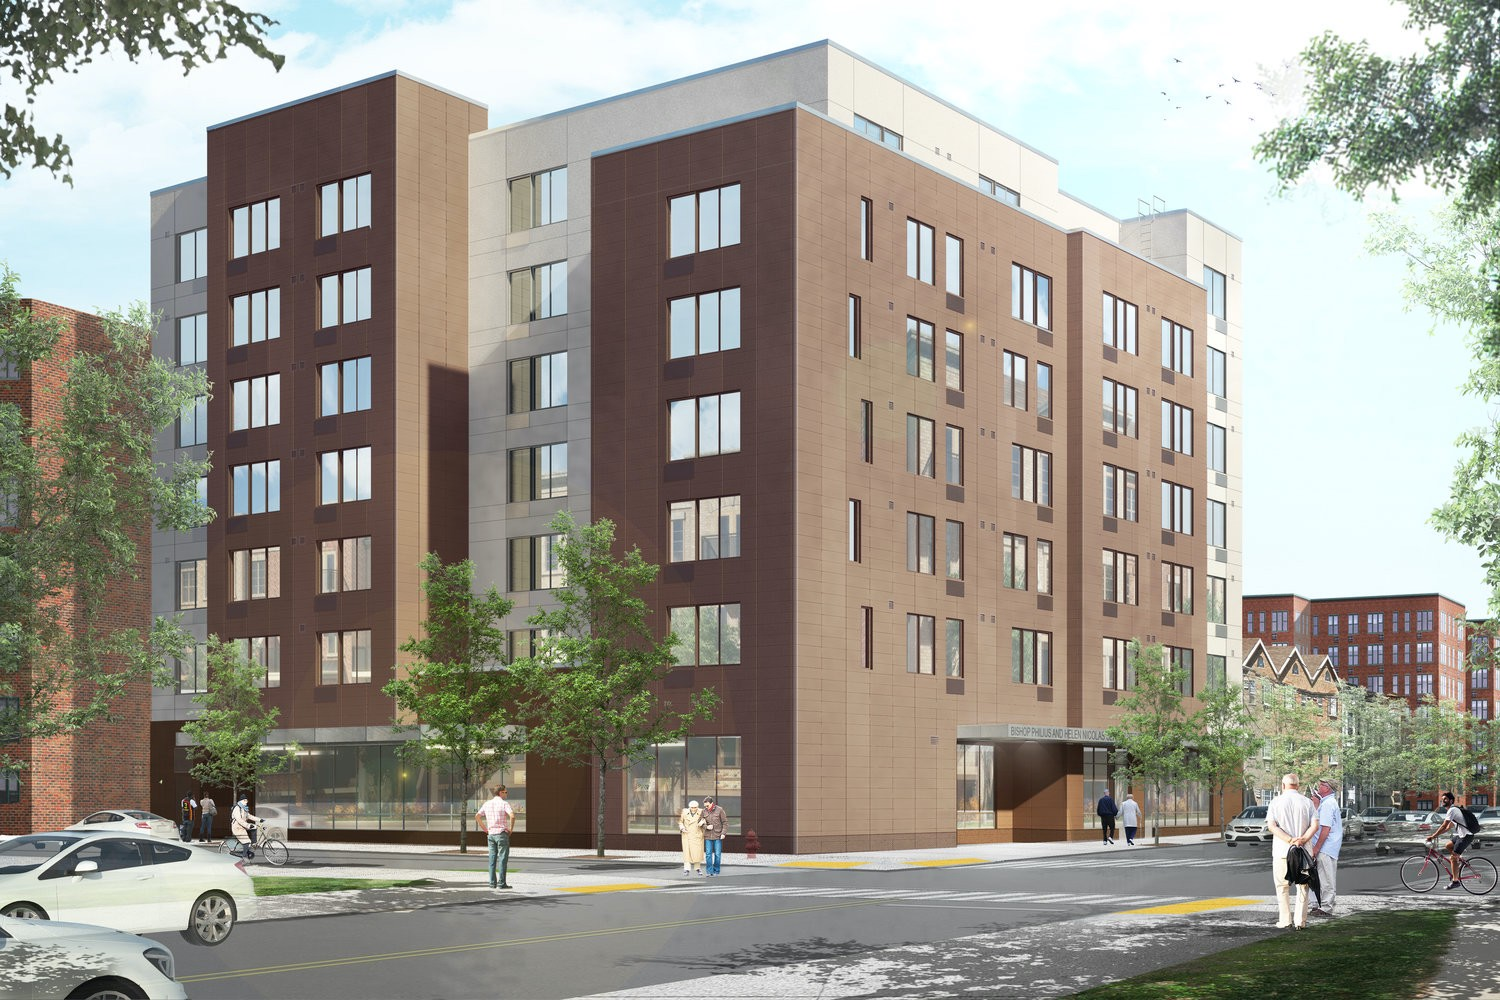 Rendering of BPHN Senior Residences in East Flatbush, Brooklyn